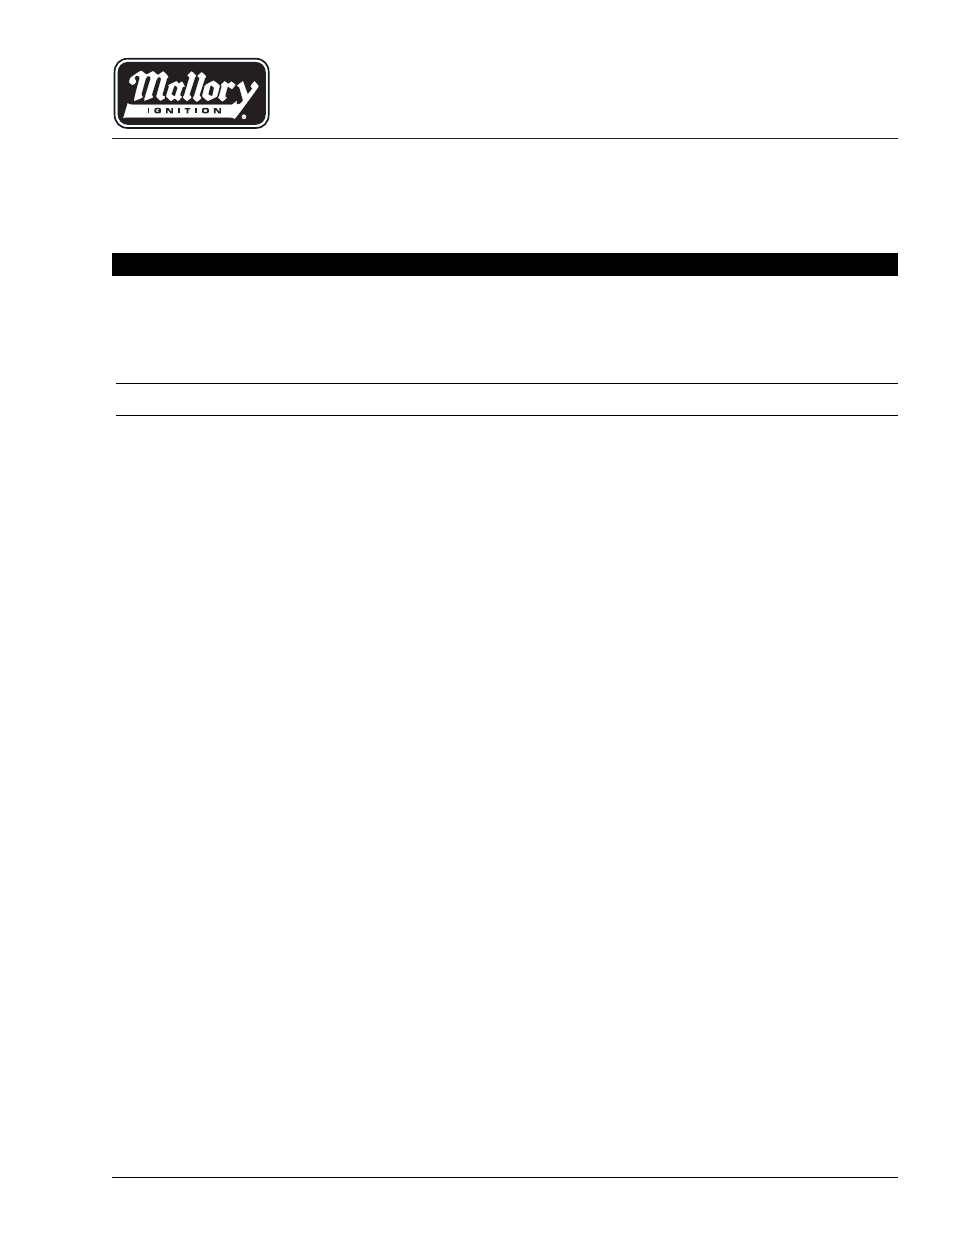 Mallory Ignition Mallory UNILITE DISTRIBUTOR User Manual | 13 pages on 4 wire ignition switch diagram, gm hei ignition wiring diagram, mallory comp 9000 distributor diagram, msd 6al box wiring diagram, hei distributor diagram, electronic ignition diagram, hei module wiring diagram, msd ignition wiring diagram, unilite distributor parts diagram, ford ignition wiring diagram, interior wiring diagram, mallory ignition wiring diagram,